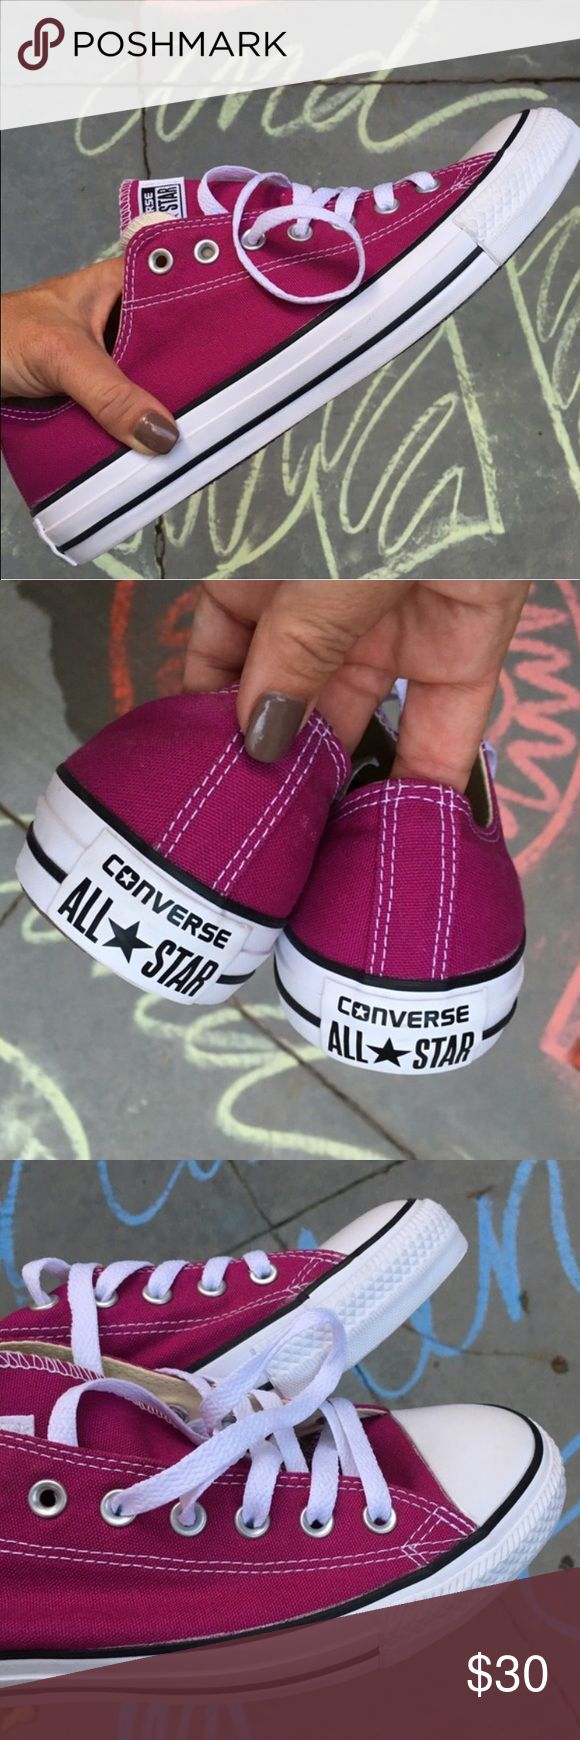 NWOB  CHUCKS! Size 13 men's New never worn Converse! Size 13 men's available. Color is magenta. ships from my smoke free home same or next day. Bundle to save  Converse Shoes Sneakers